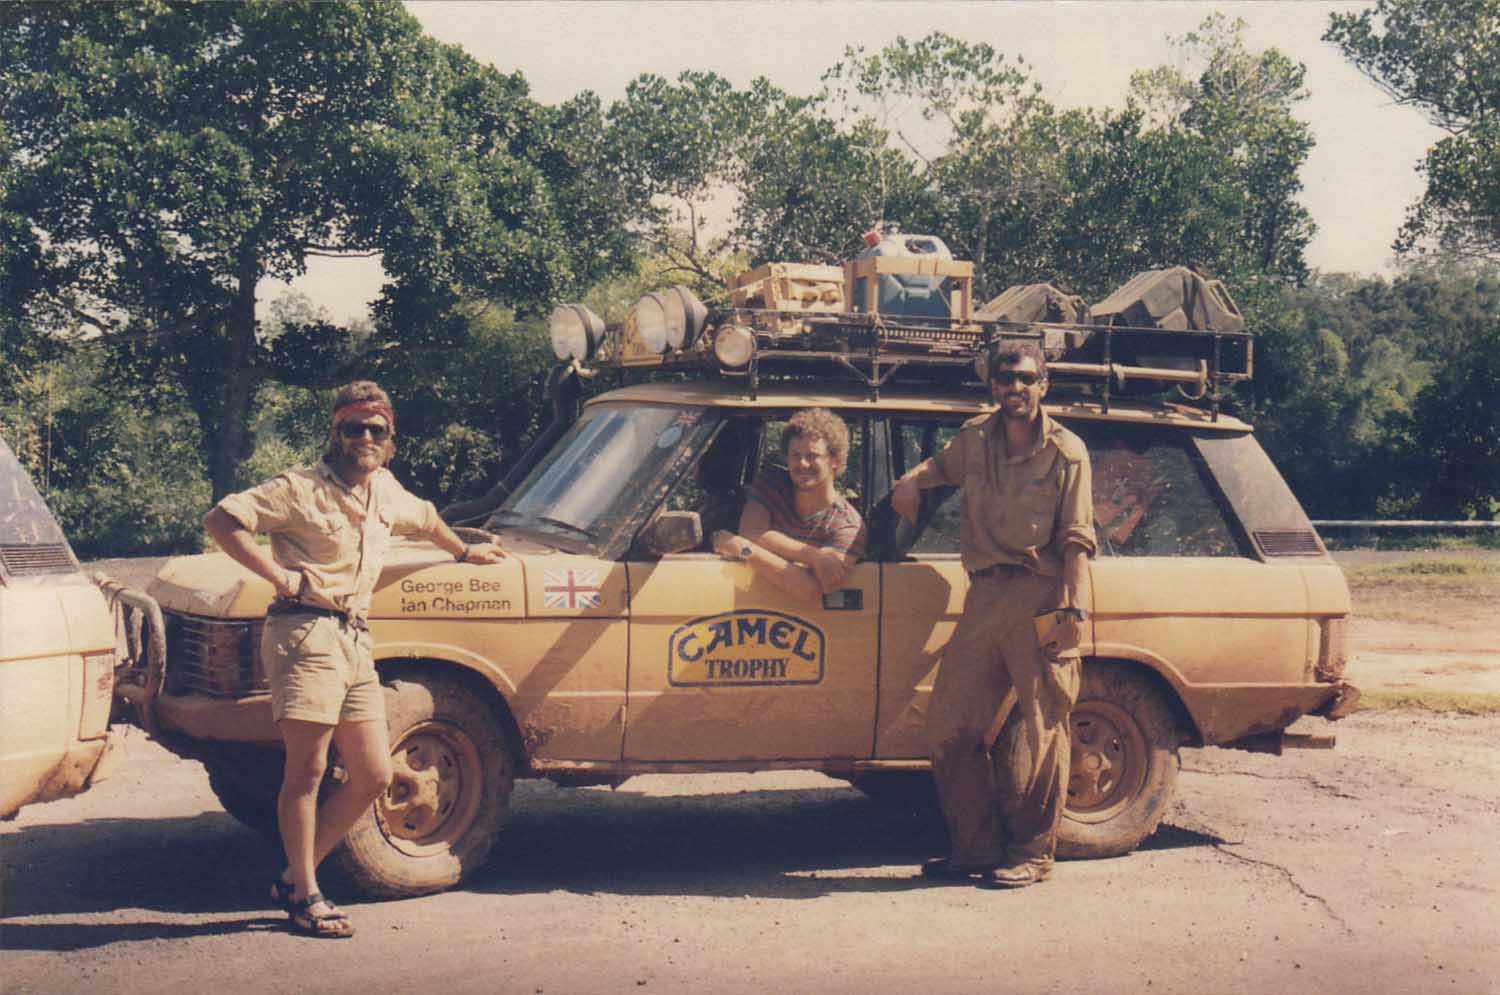 Return to Camel Trophy 017